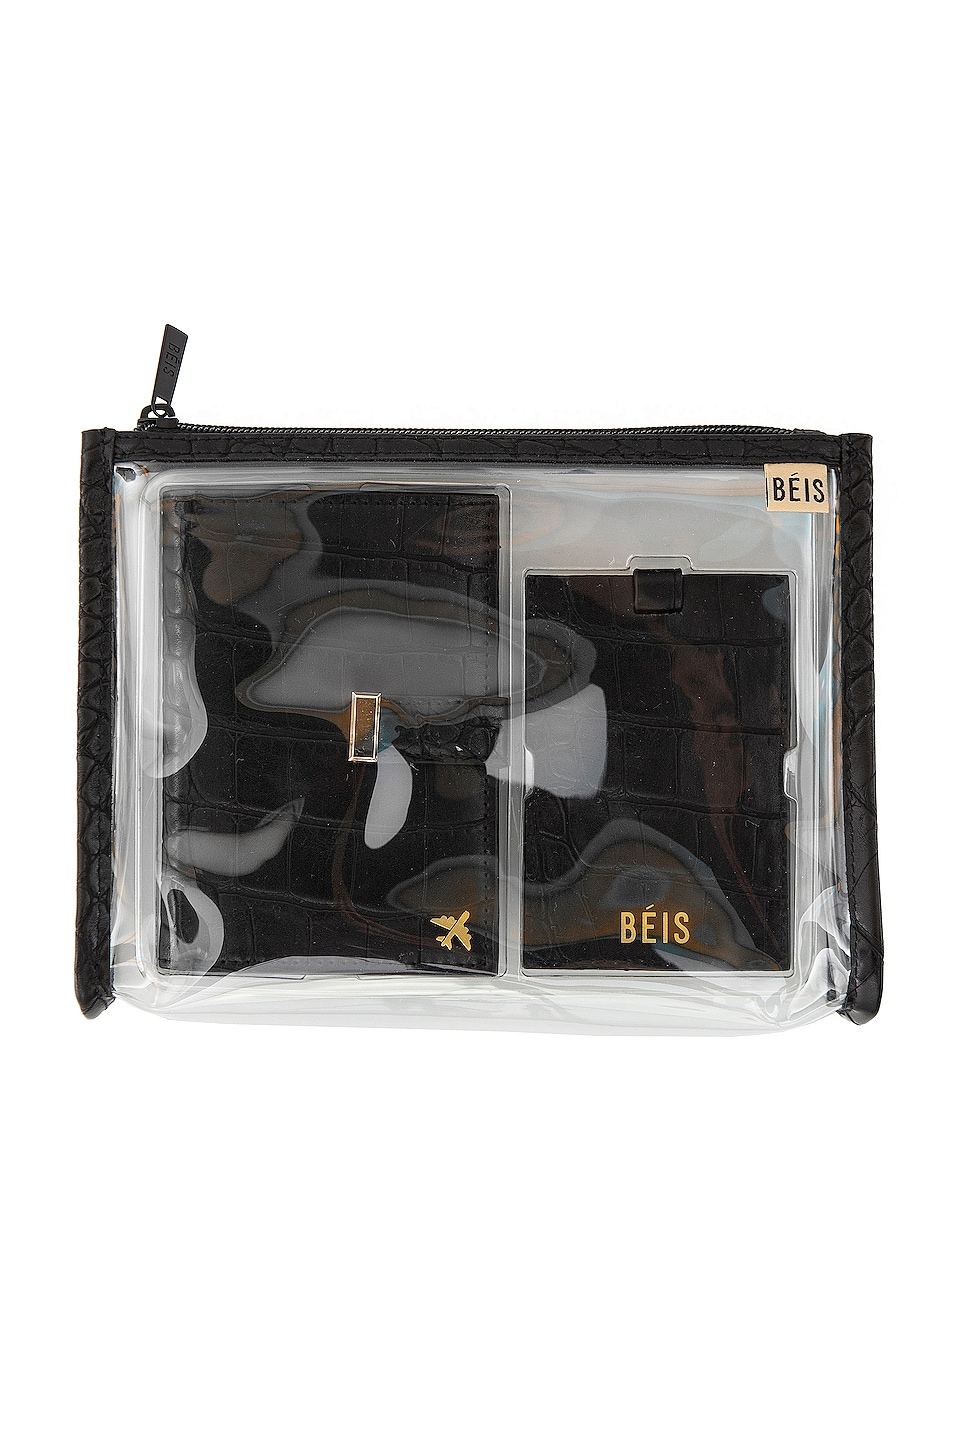 BEIS Passport and Luggage Tag Set in Black Croc